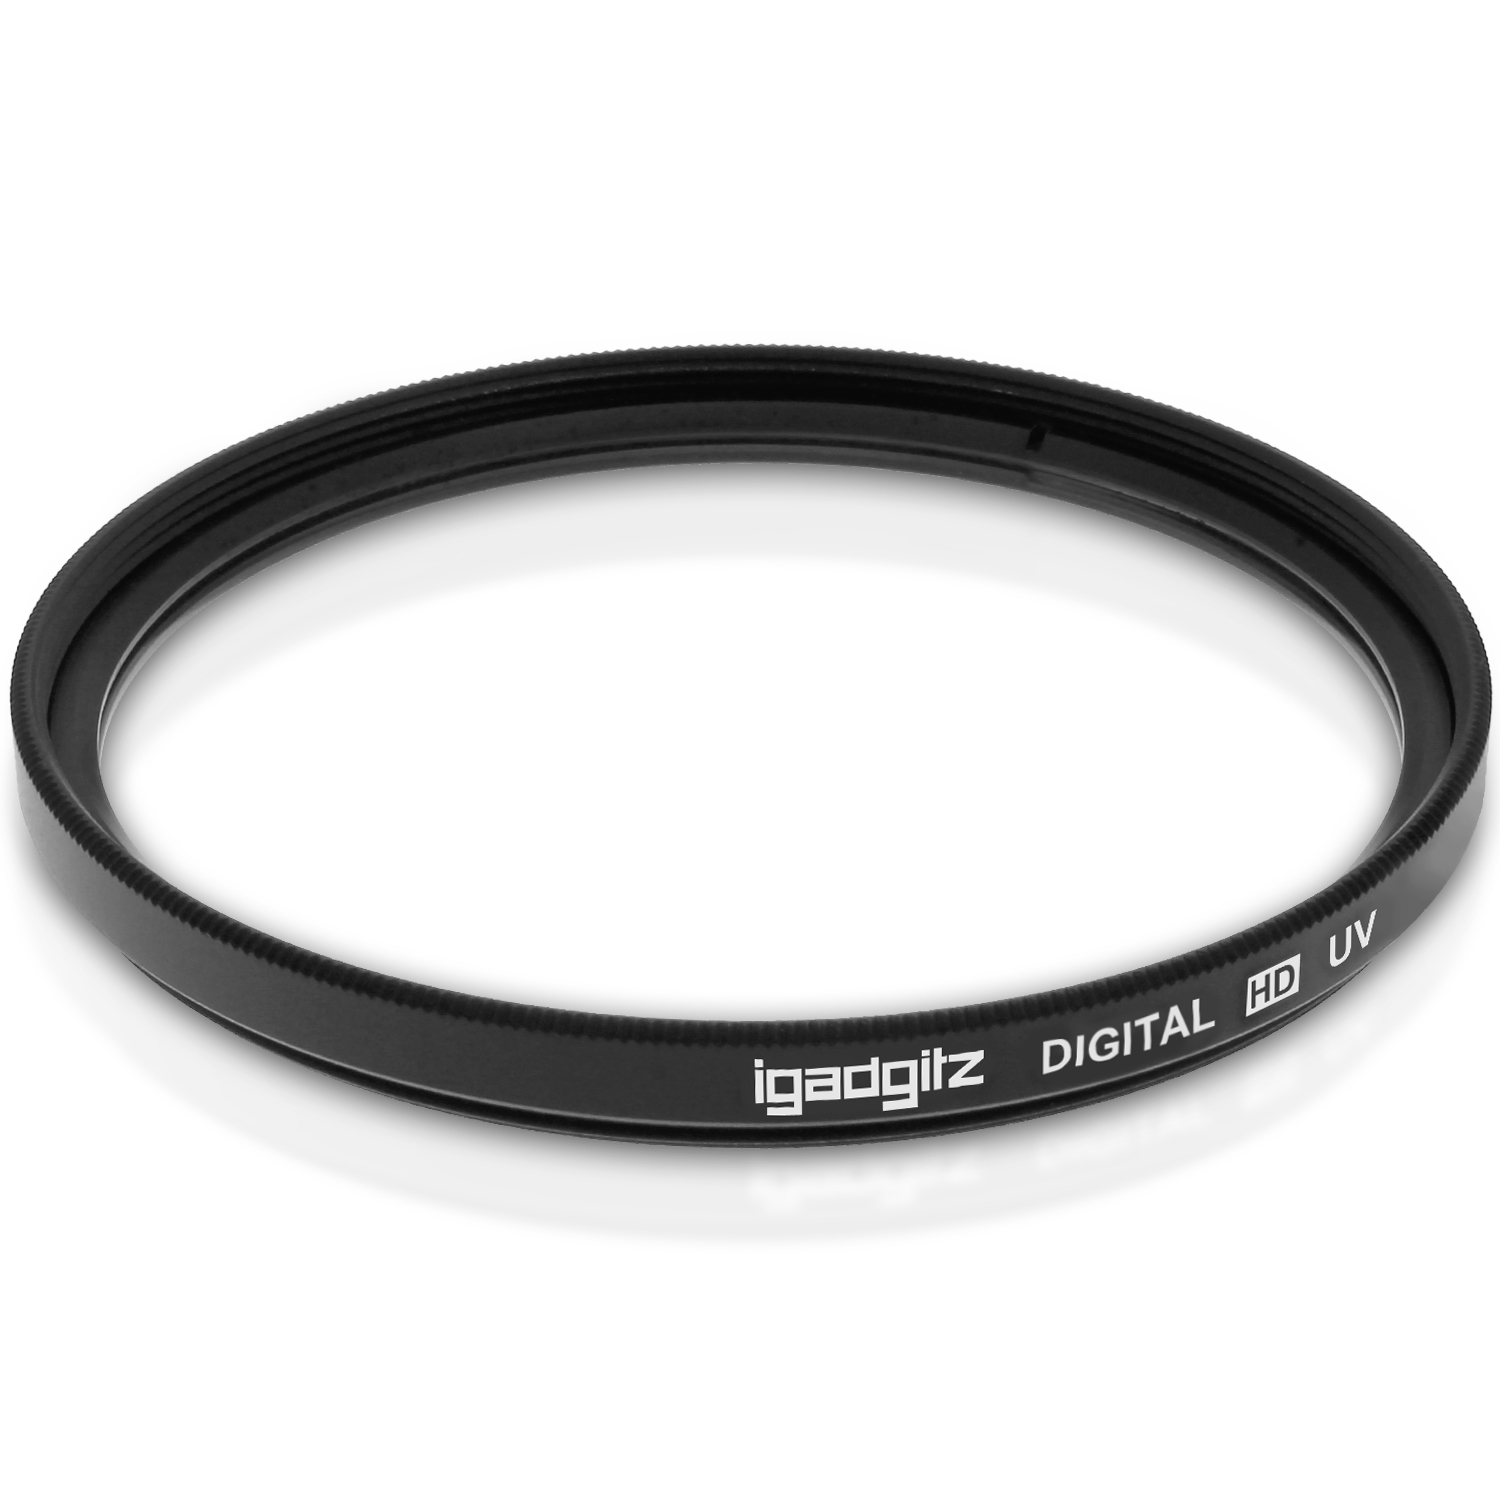 iGadgitz Xtra 77mm Glass Multi-Coated UV Lens Filter Protection for SLR & DSLR Cameras